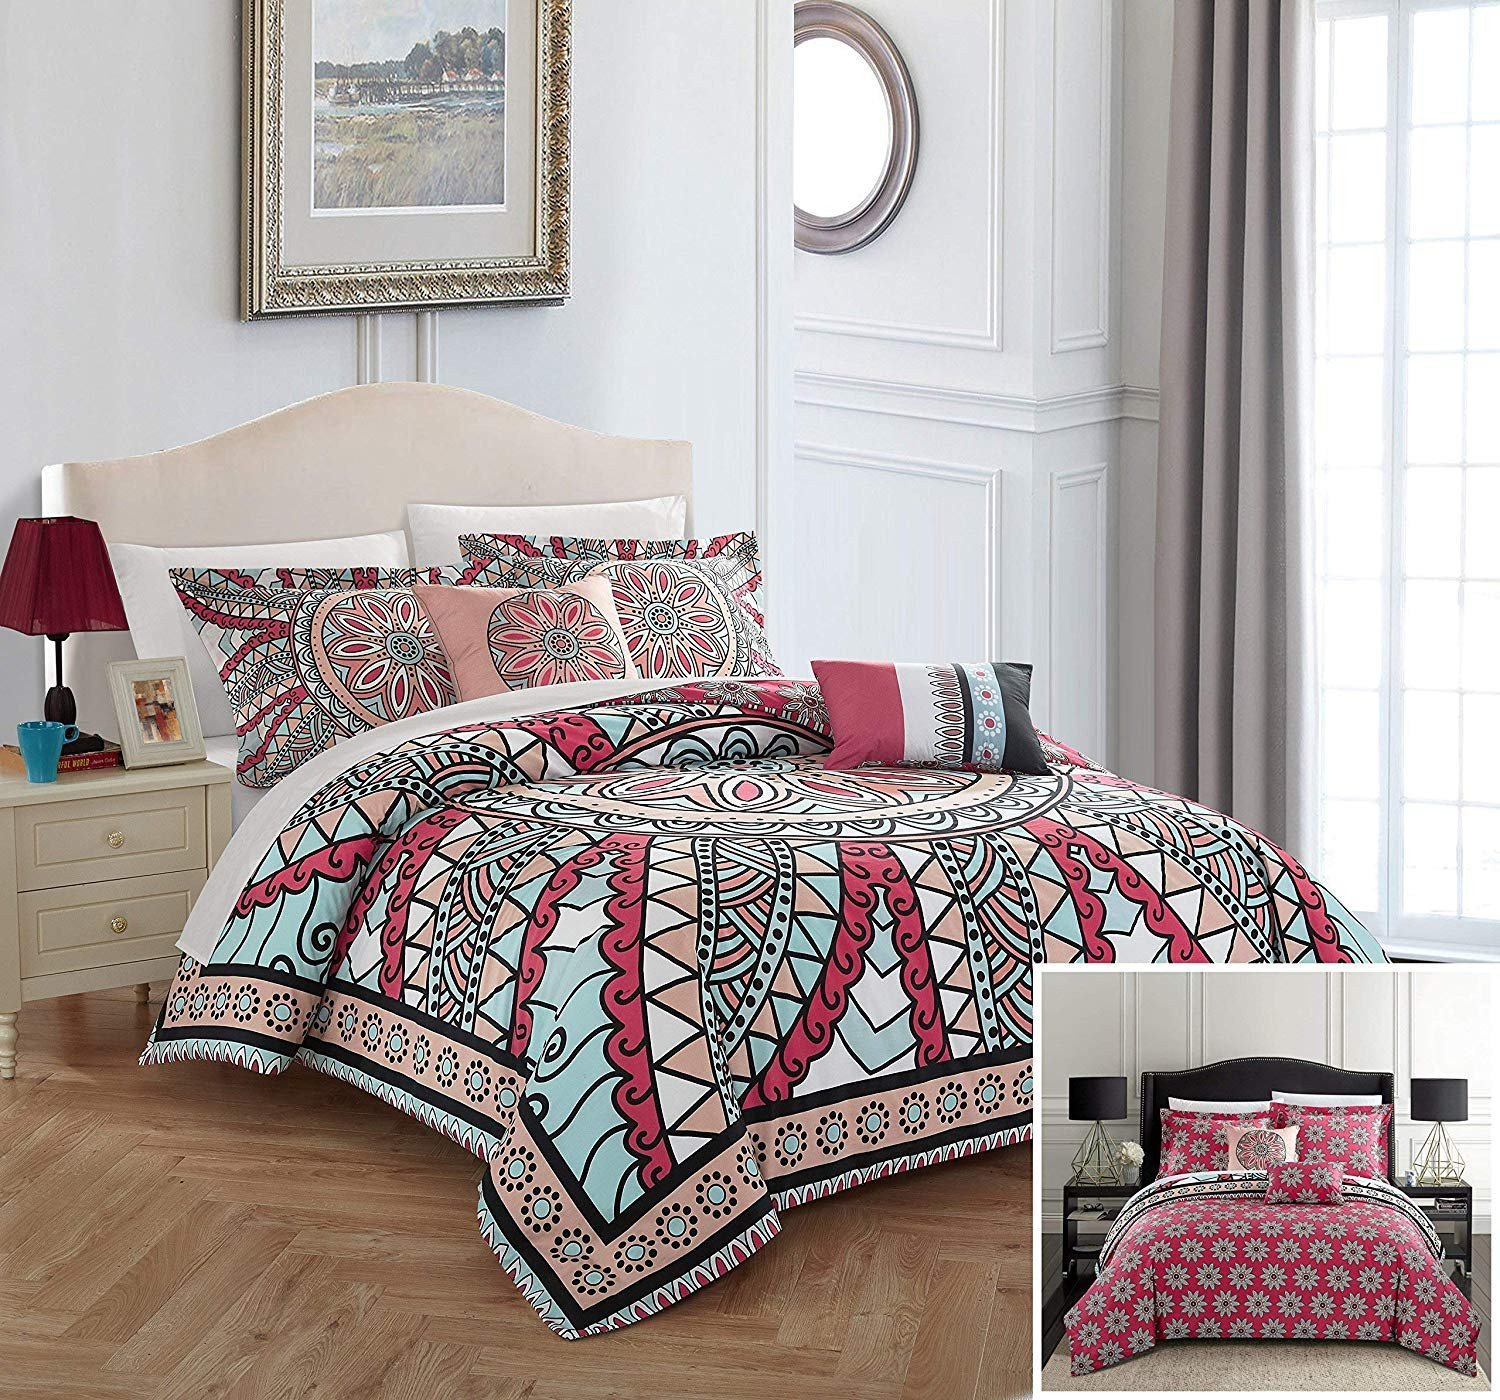 King Size Bedroom Comforter Set New Amazon Chic Home Michal 5 Piece Reversible forter